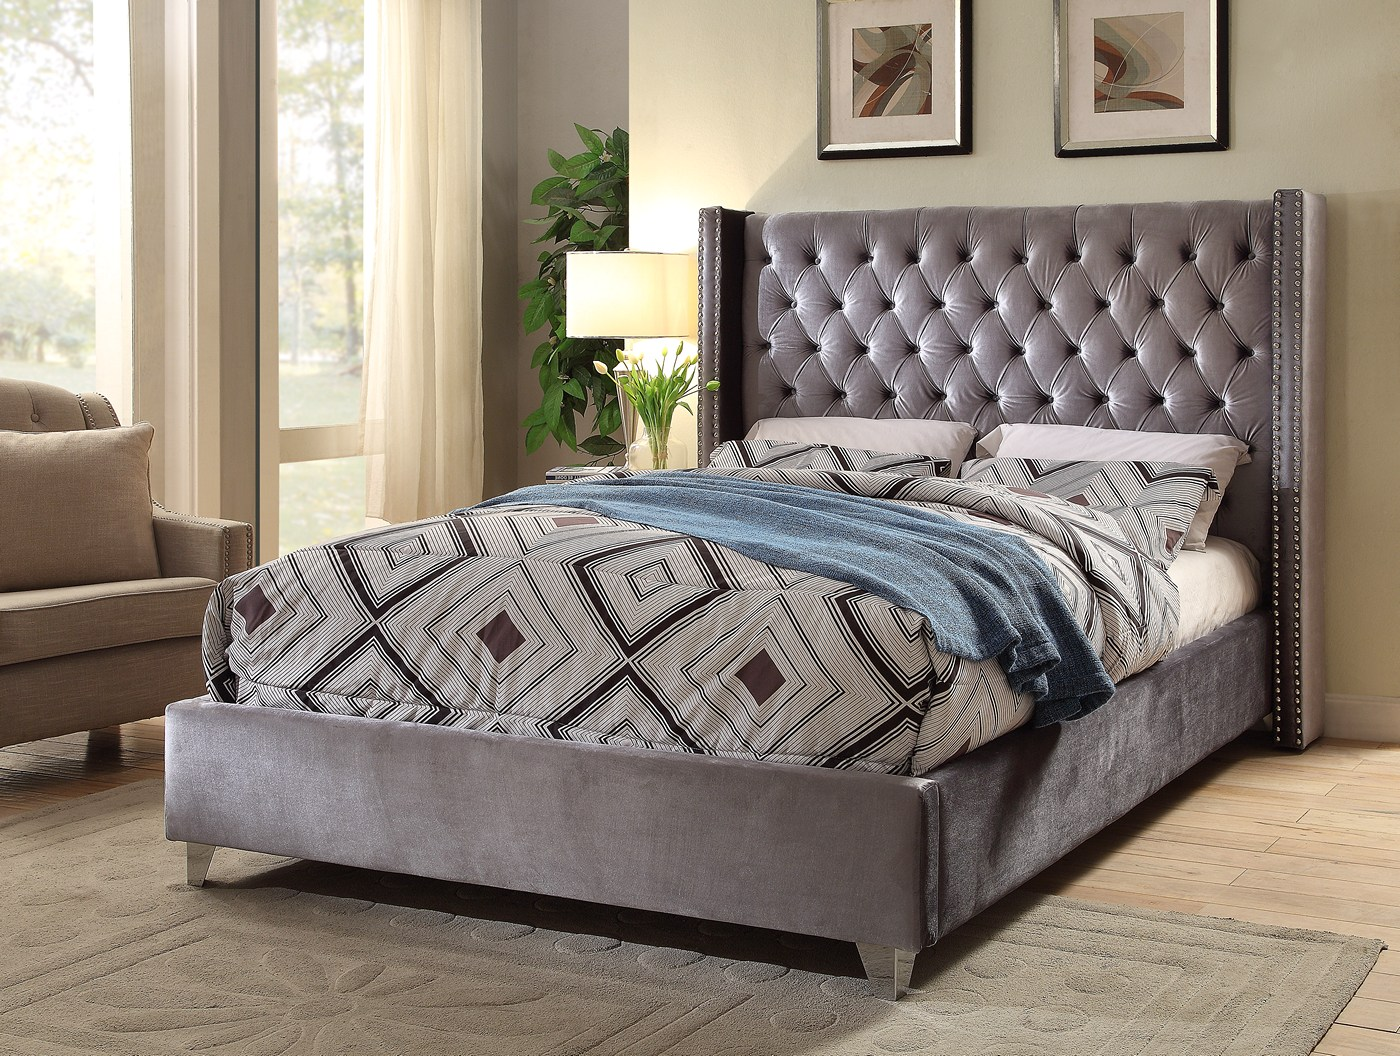 Gray Velvet Button Tufted King Platform Bed : Lucca contemporary grey velvet button tufted king platform bed